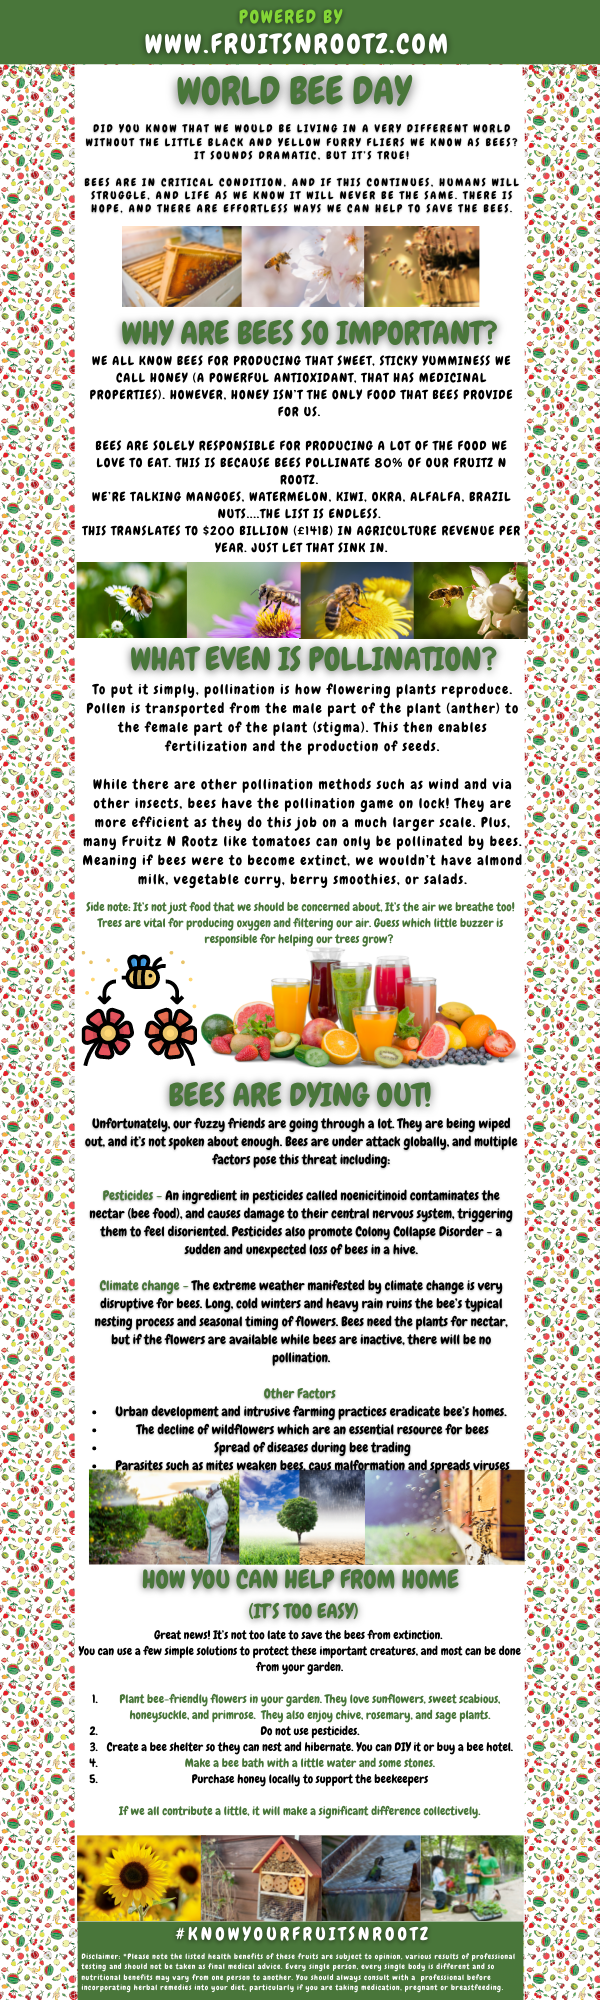 Fruits N Rootz | World Bee Day